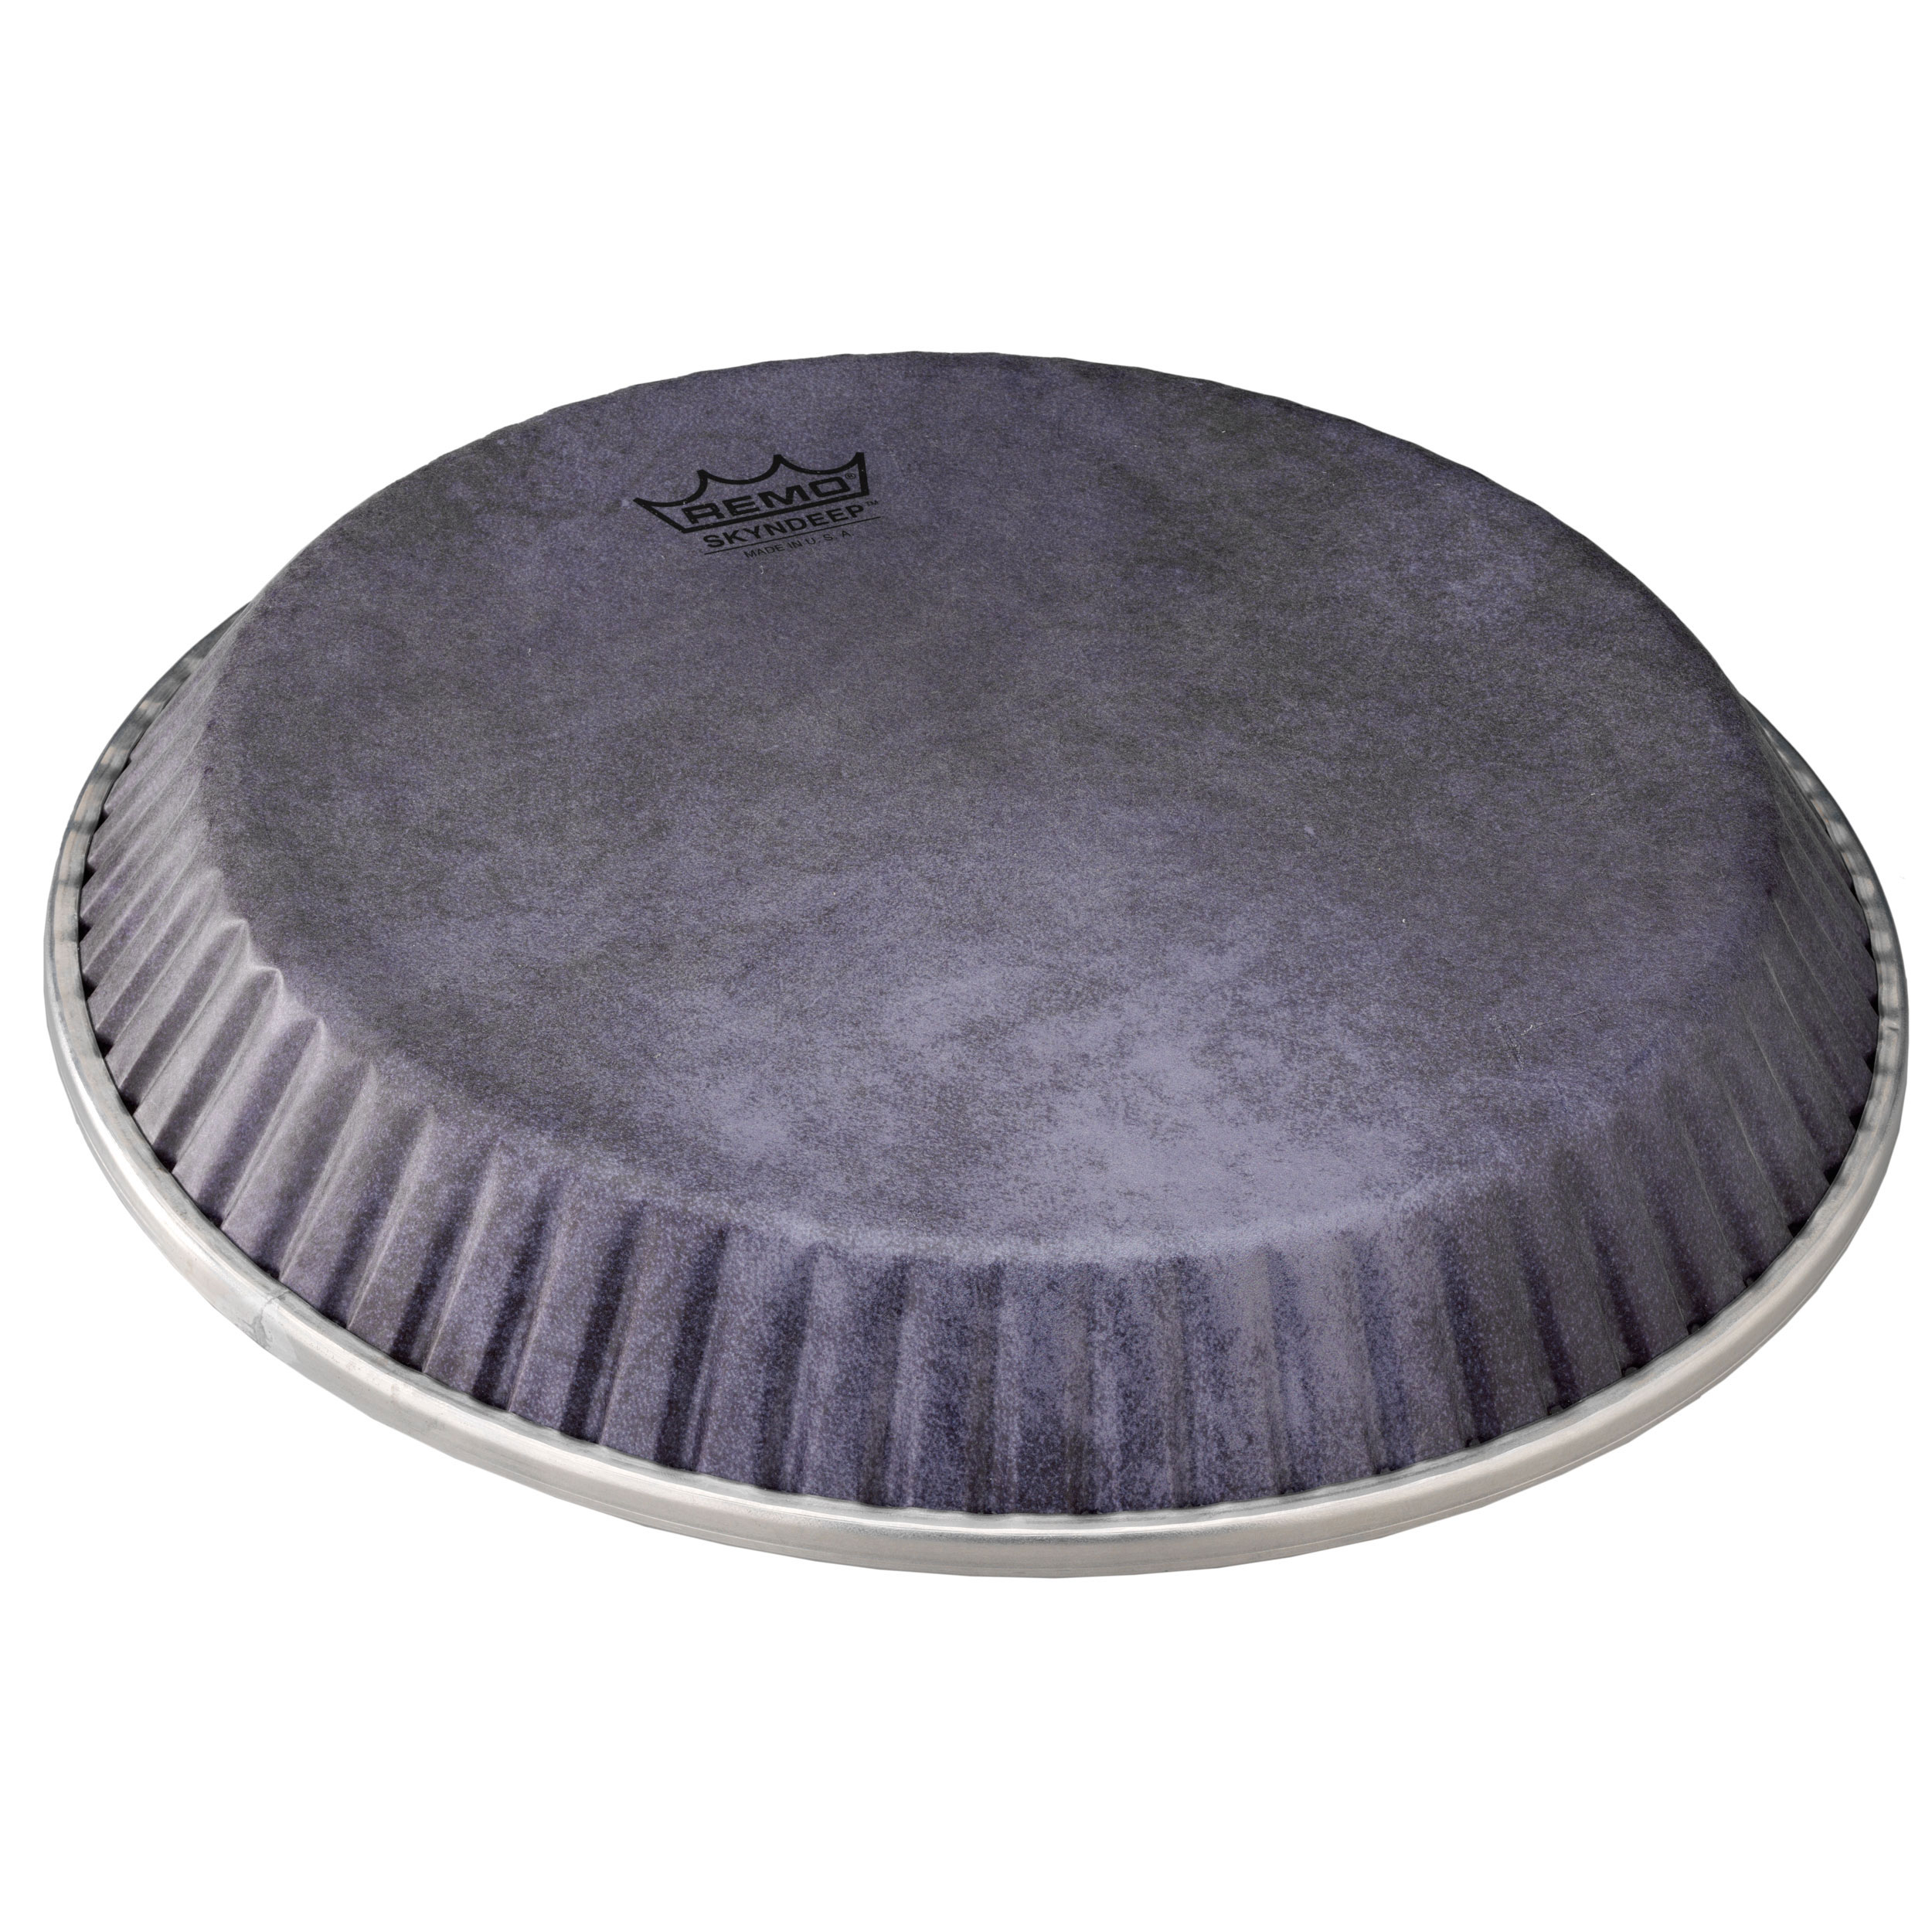 """Remo 11.75"""" Symmetry Skyndeep Conga Drum Head (D4 Collar) with Black Calfskin Graphic"""